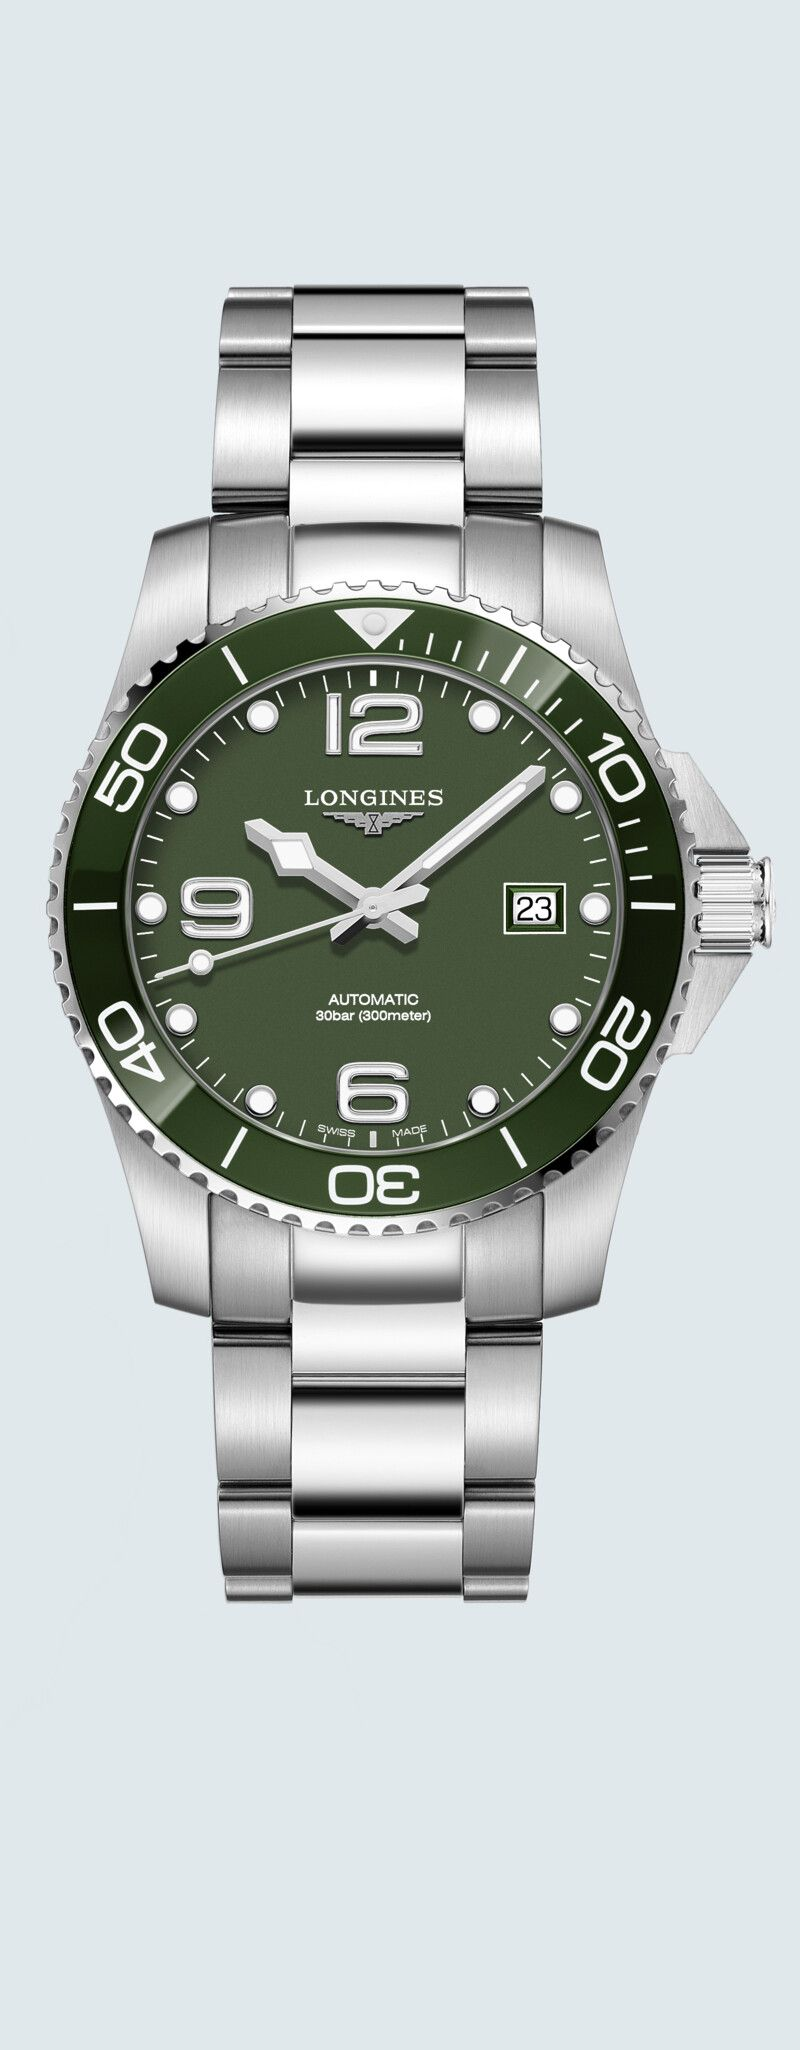 41.00 mm Stainless steel and ceramic case with Green matt dial and Stainless steel strap - case zoo